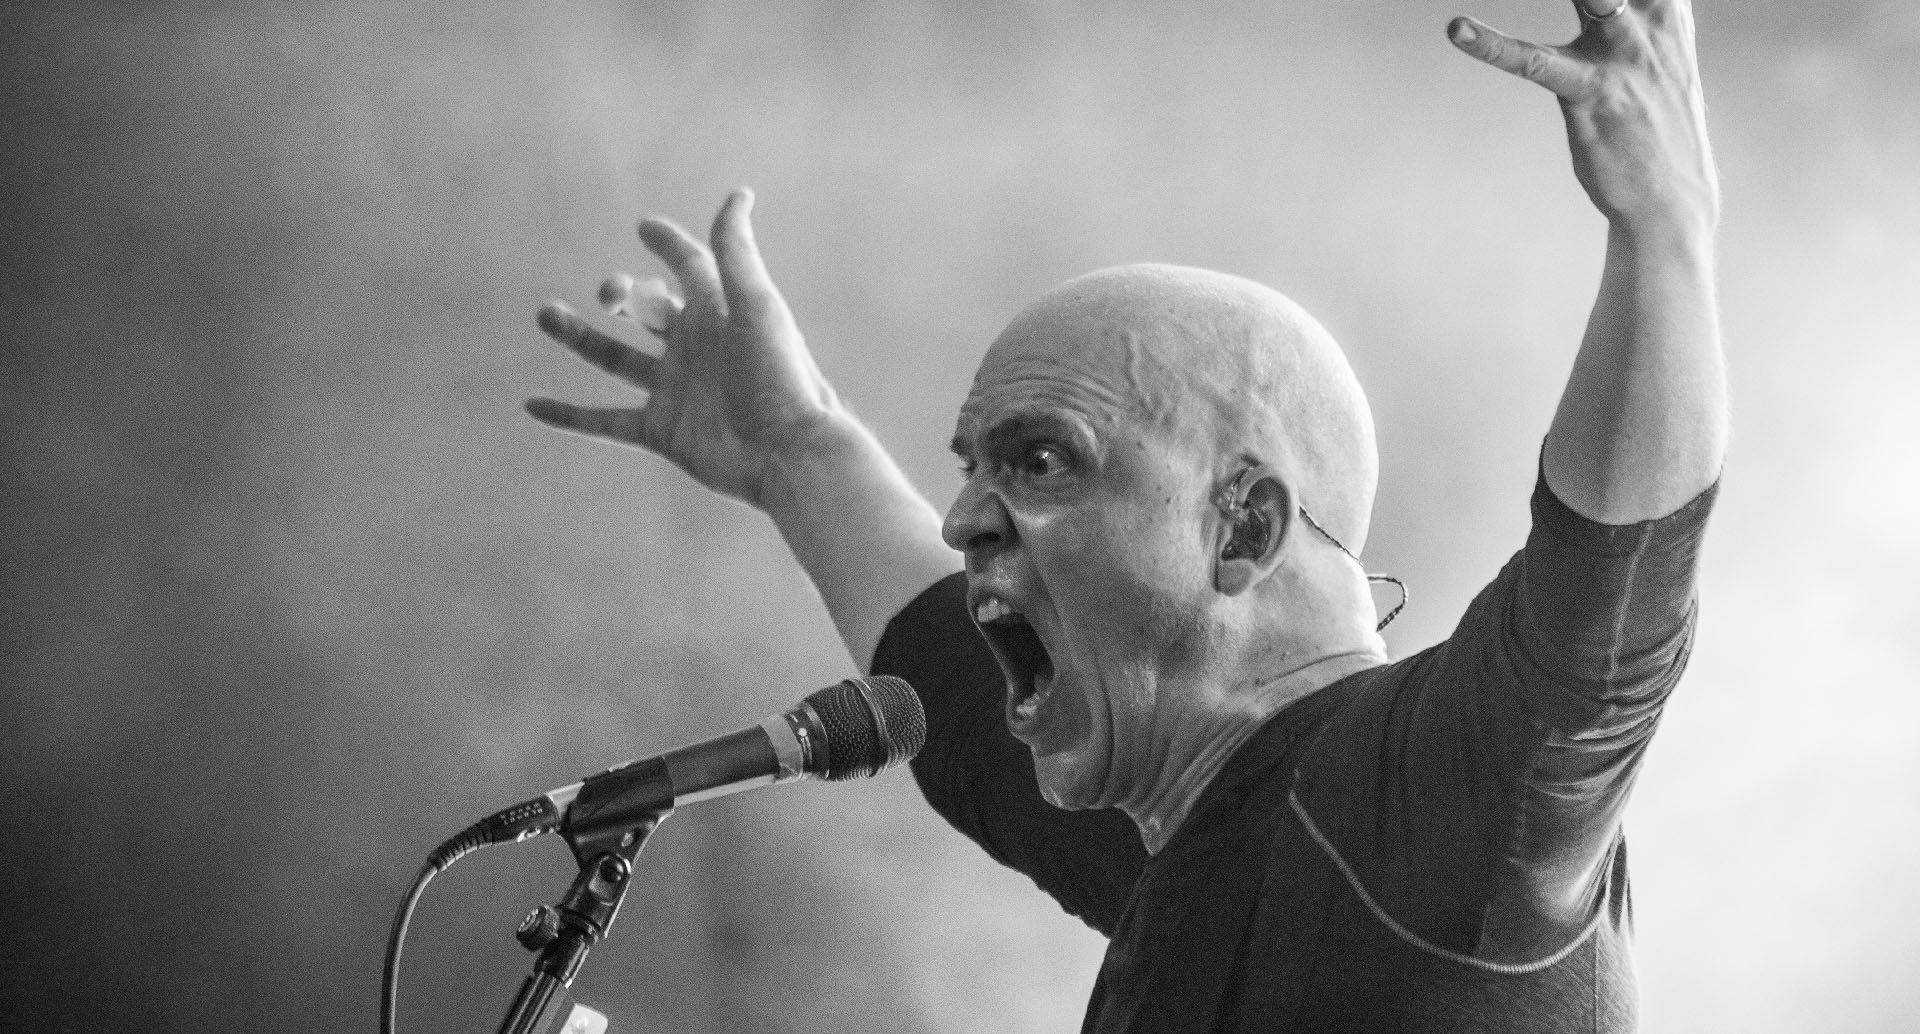 Devin Townsend Live in Singapore 2019